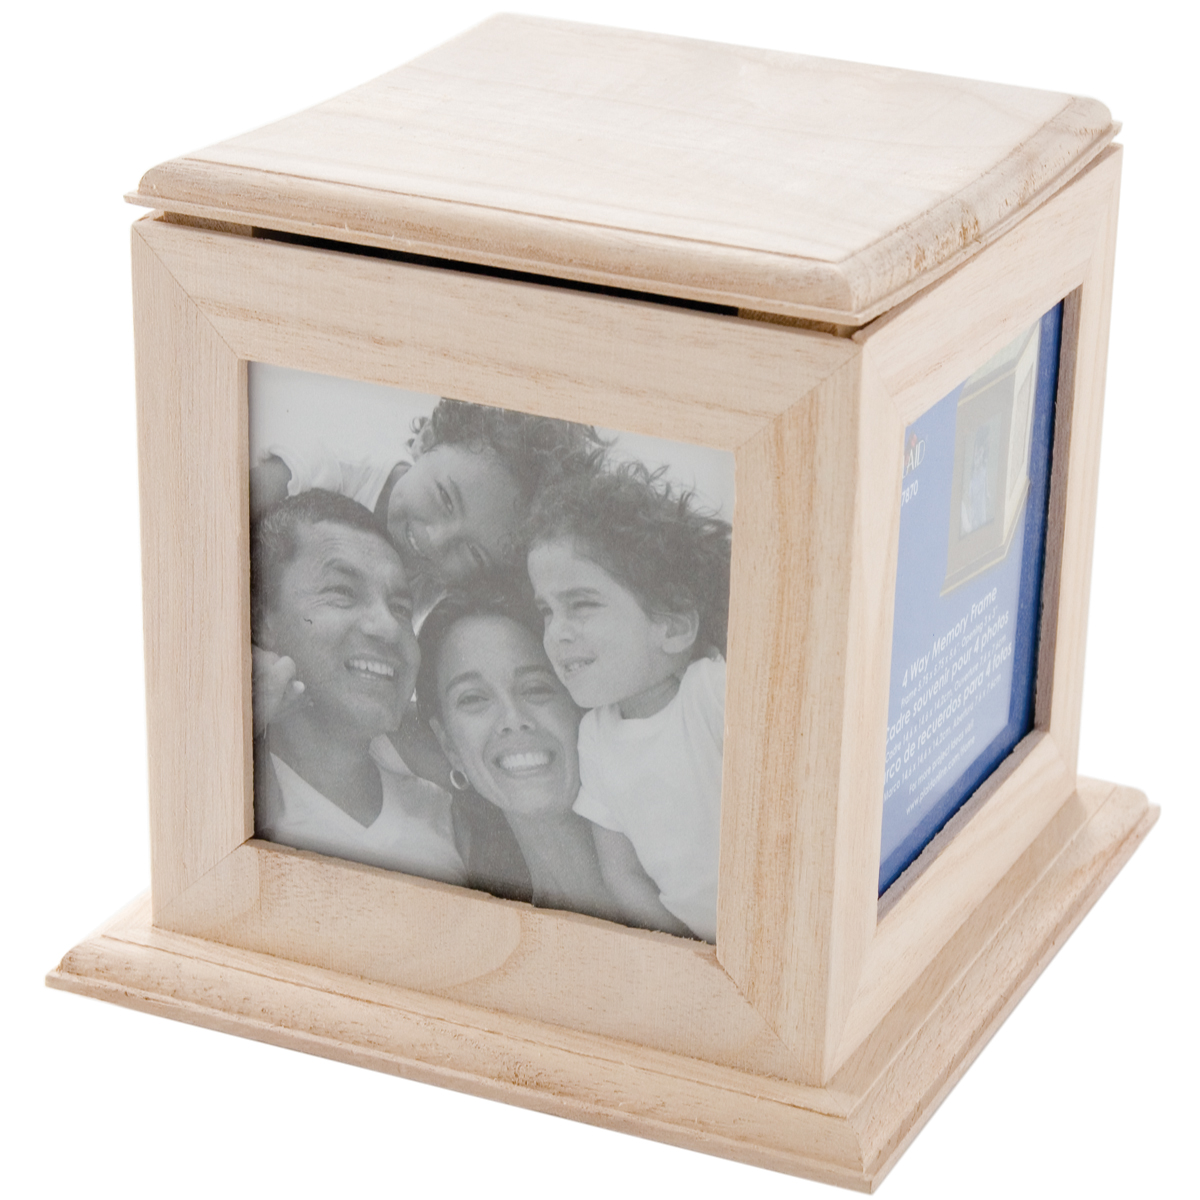 """Plaid   Wood Surfaces, 4-Way Memory Frame, size: 5 3/4 """" x 5 3/4 """" x 5 1/2 """",   3"""" x 3"""" openings"""